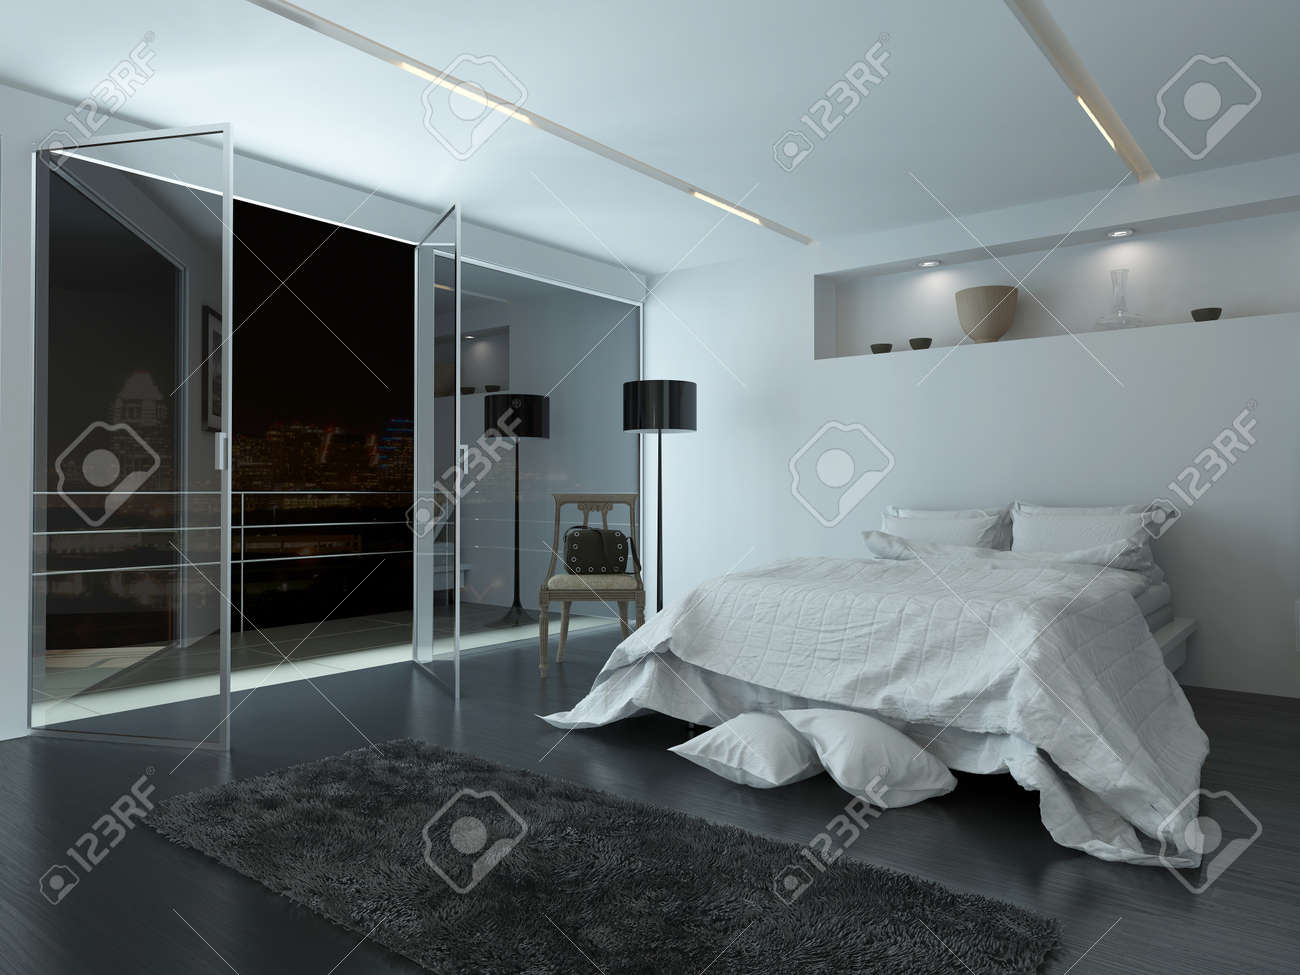 Elegant White Modern Bedroom Interior With Large View Windows Overlooking A Night Sky And Balcony Illuminated